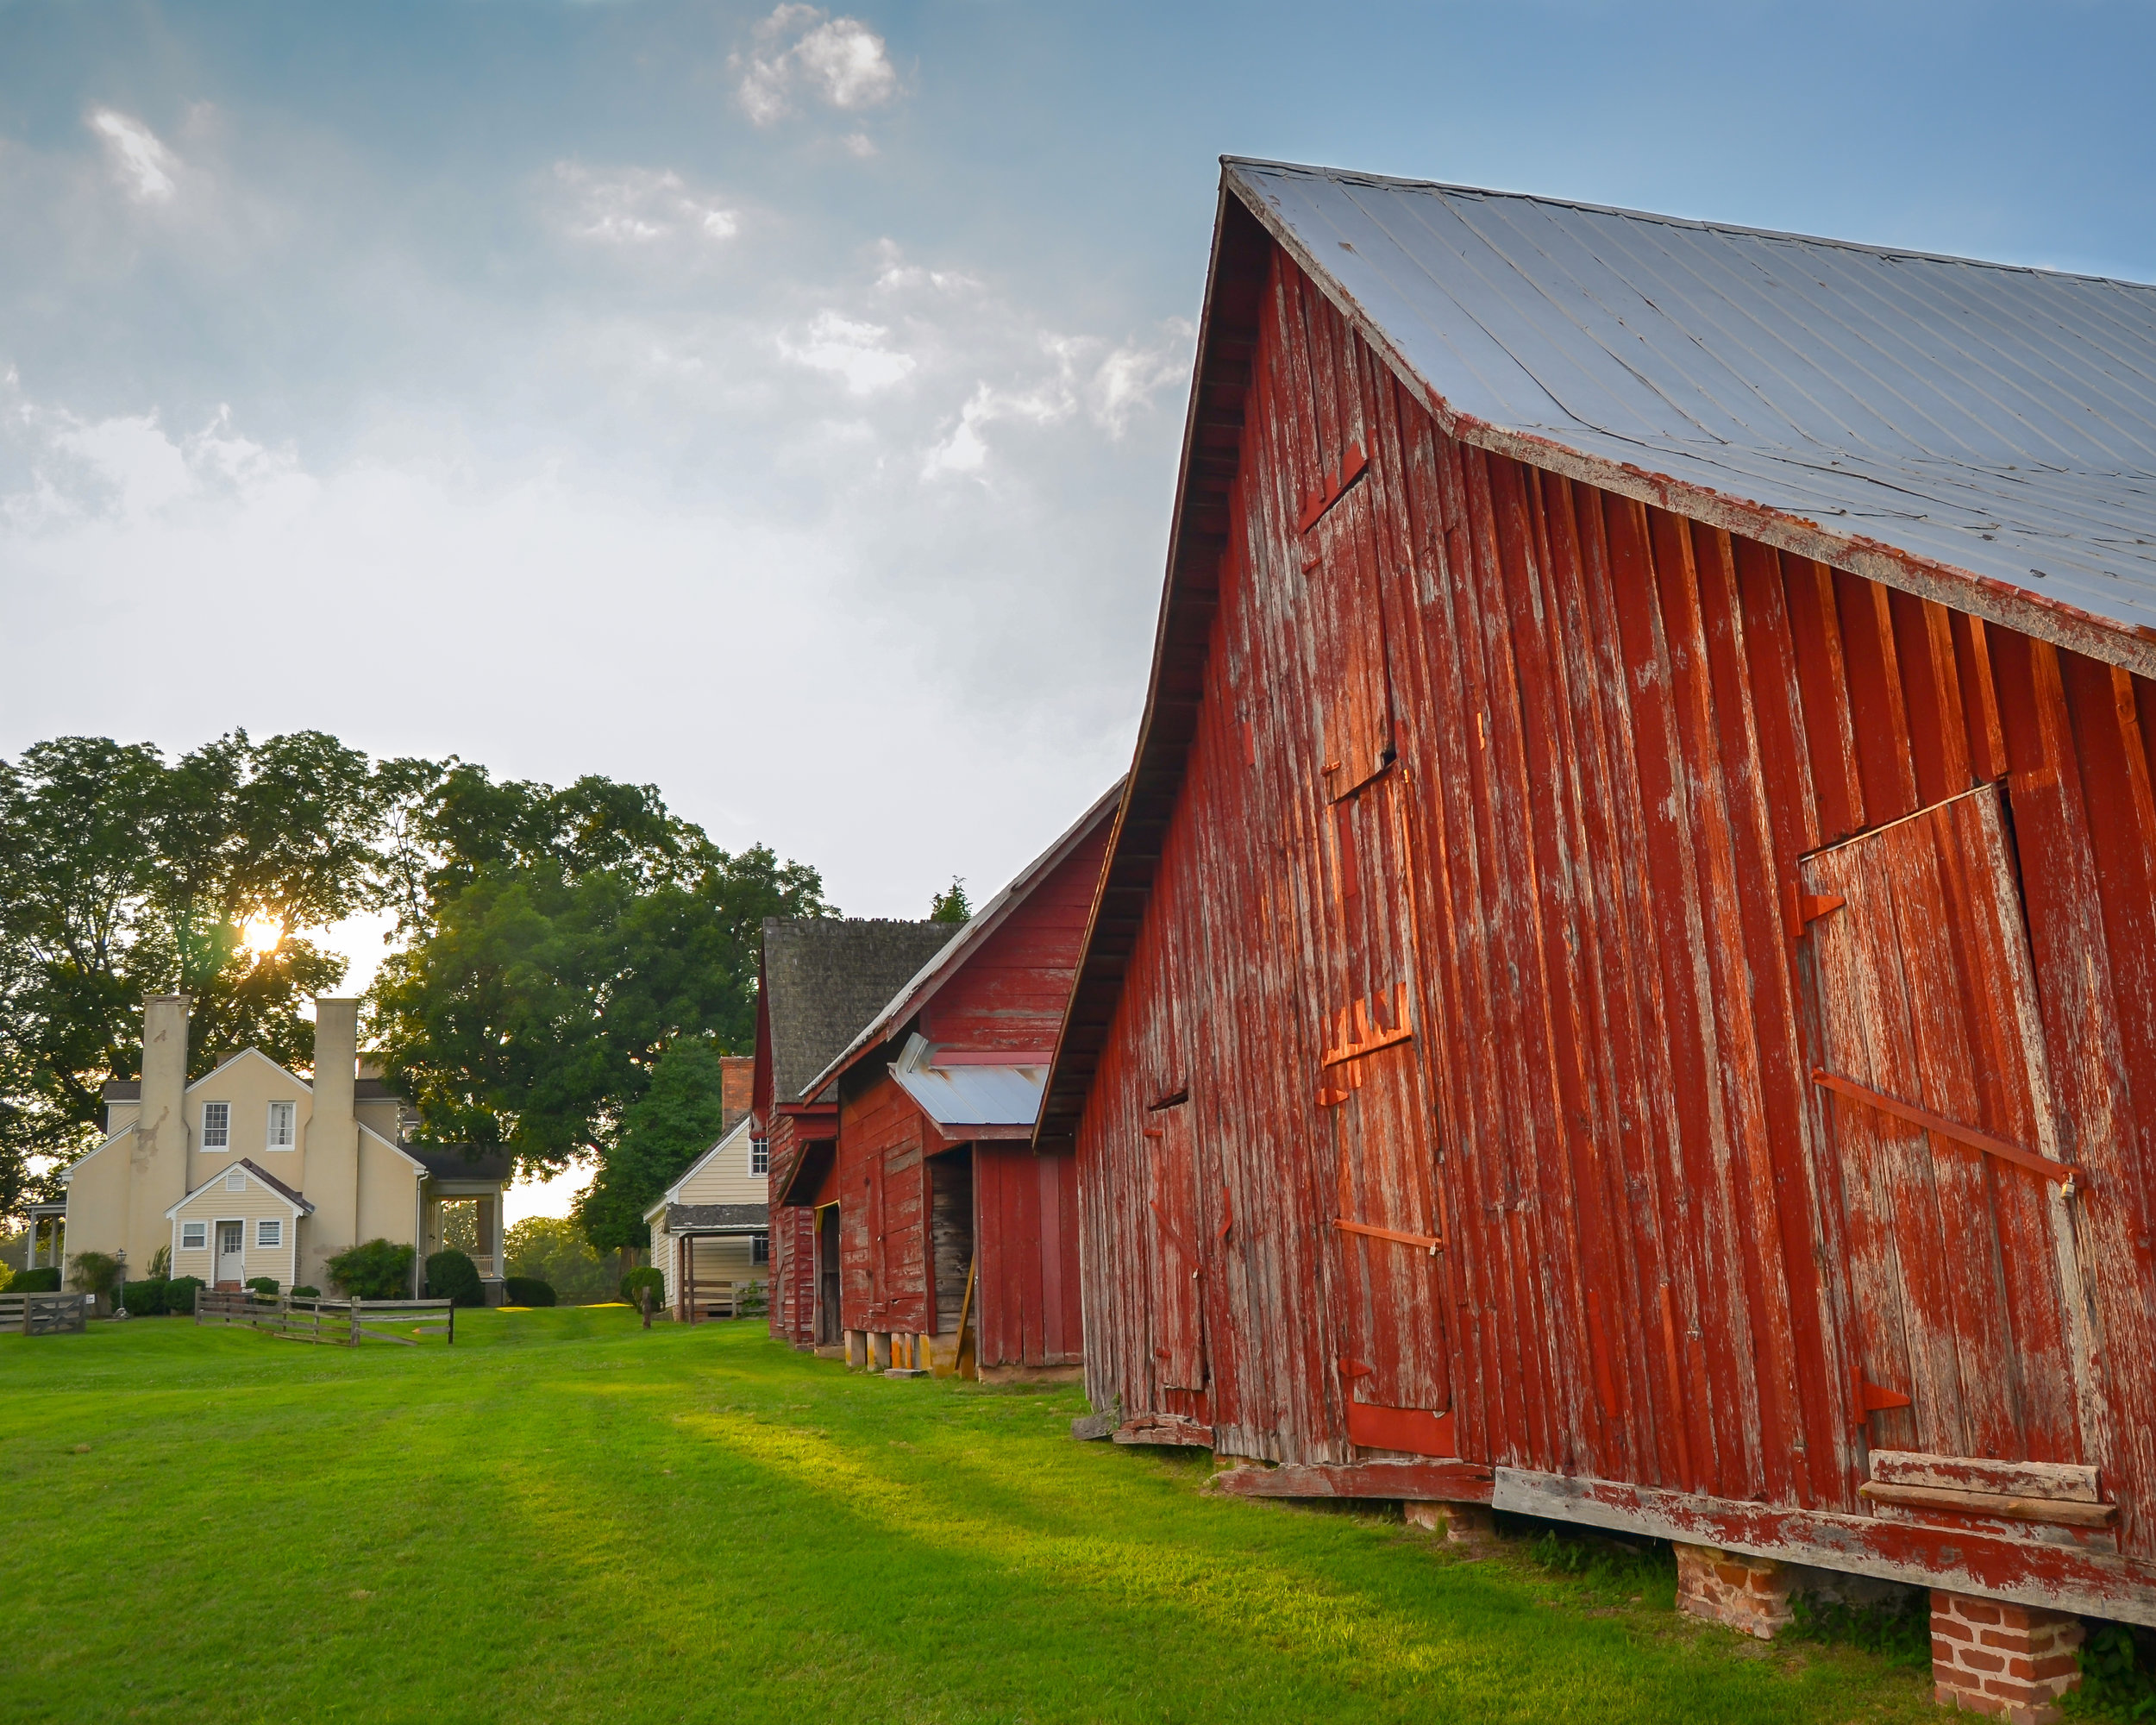 Historic old red barns and a house in afternoon sunlight at Windsor Castle Park in Smithfield,Virginia-2.jpg